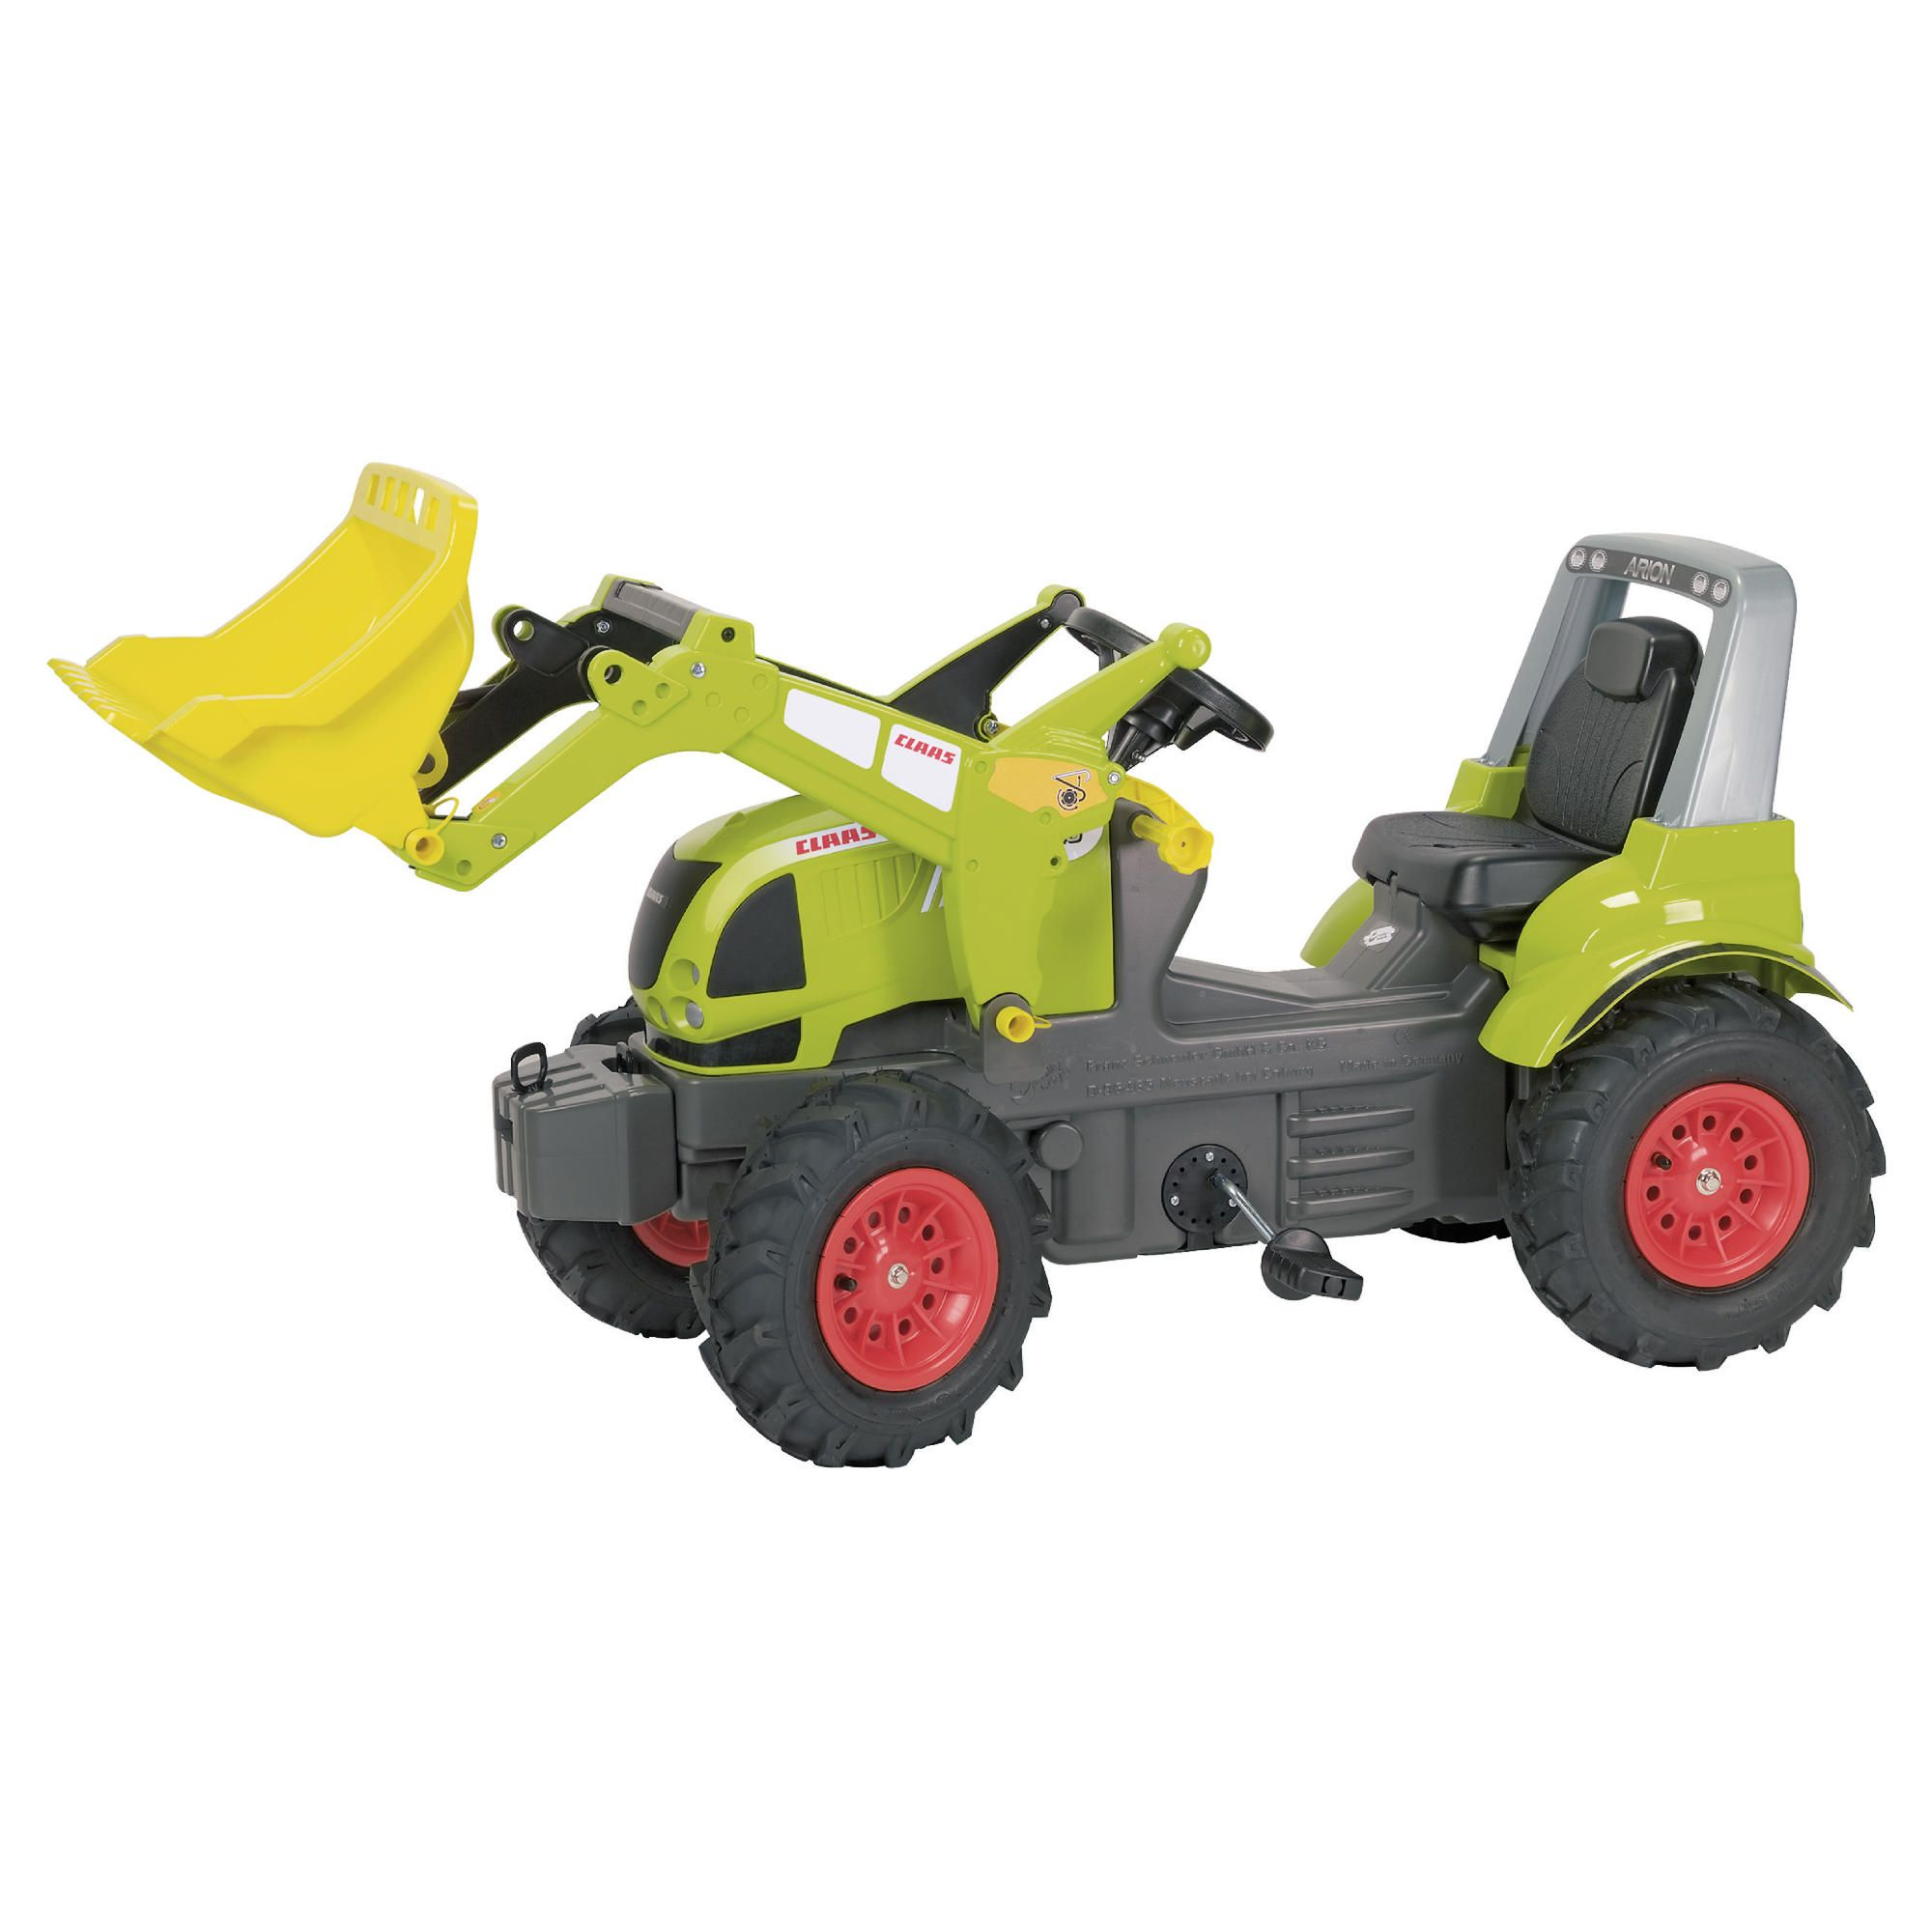 Claas Arion 640 Ride-On Tractor With Pneumatic Tyres & Rolly Trac Loader at Tesco Direct